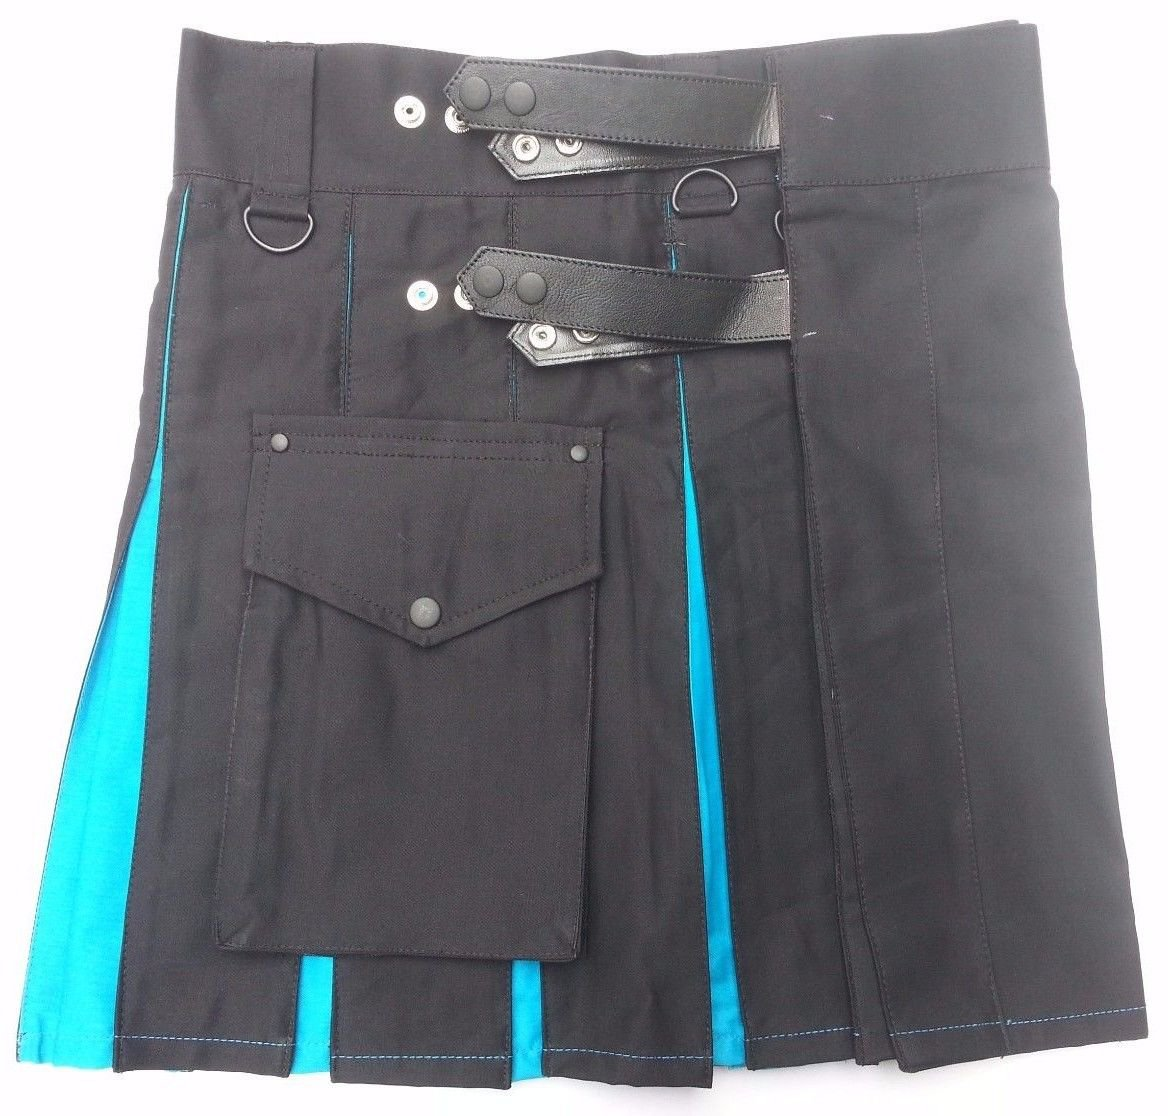 "42"" Ladies TDK Black & Blue Cotton Hybrid Kilt, Leather Straps Tactical Duty Kilt Black/Blue Cotton"